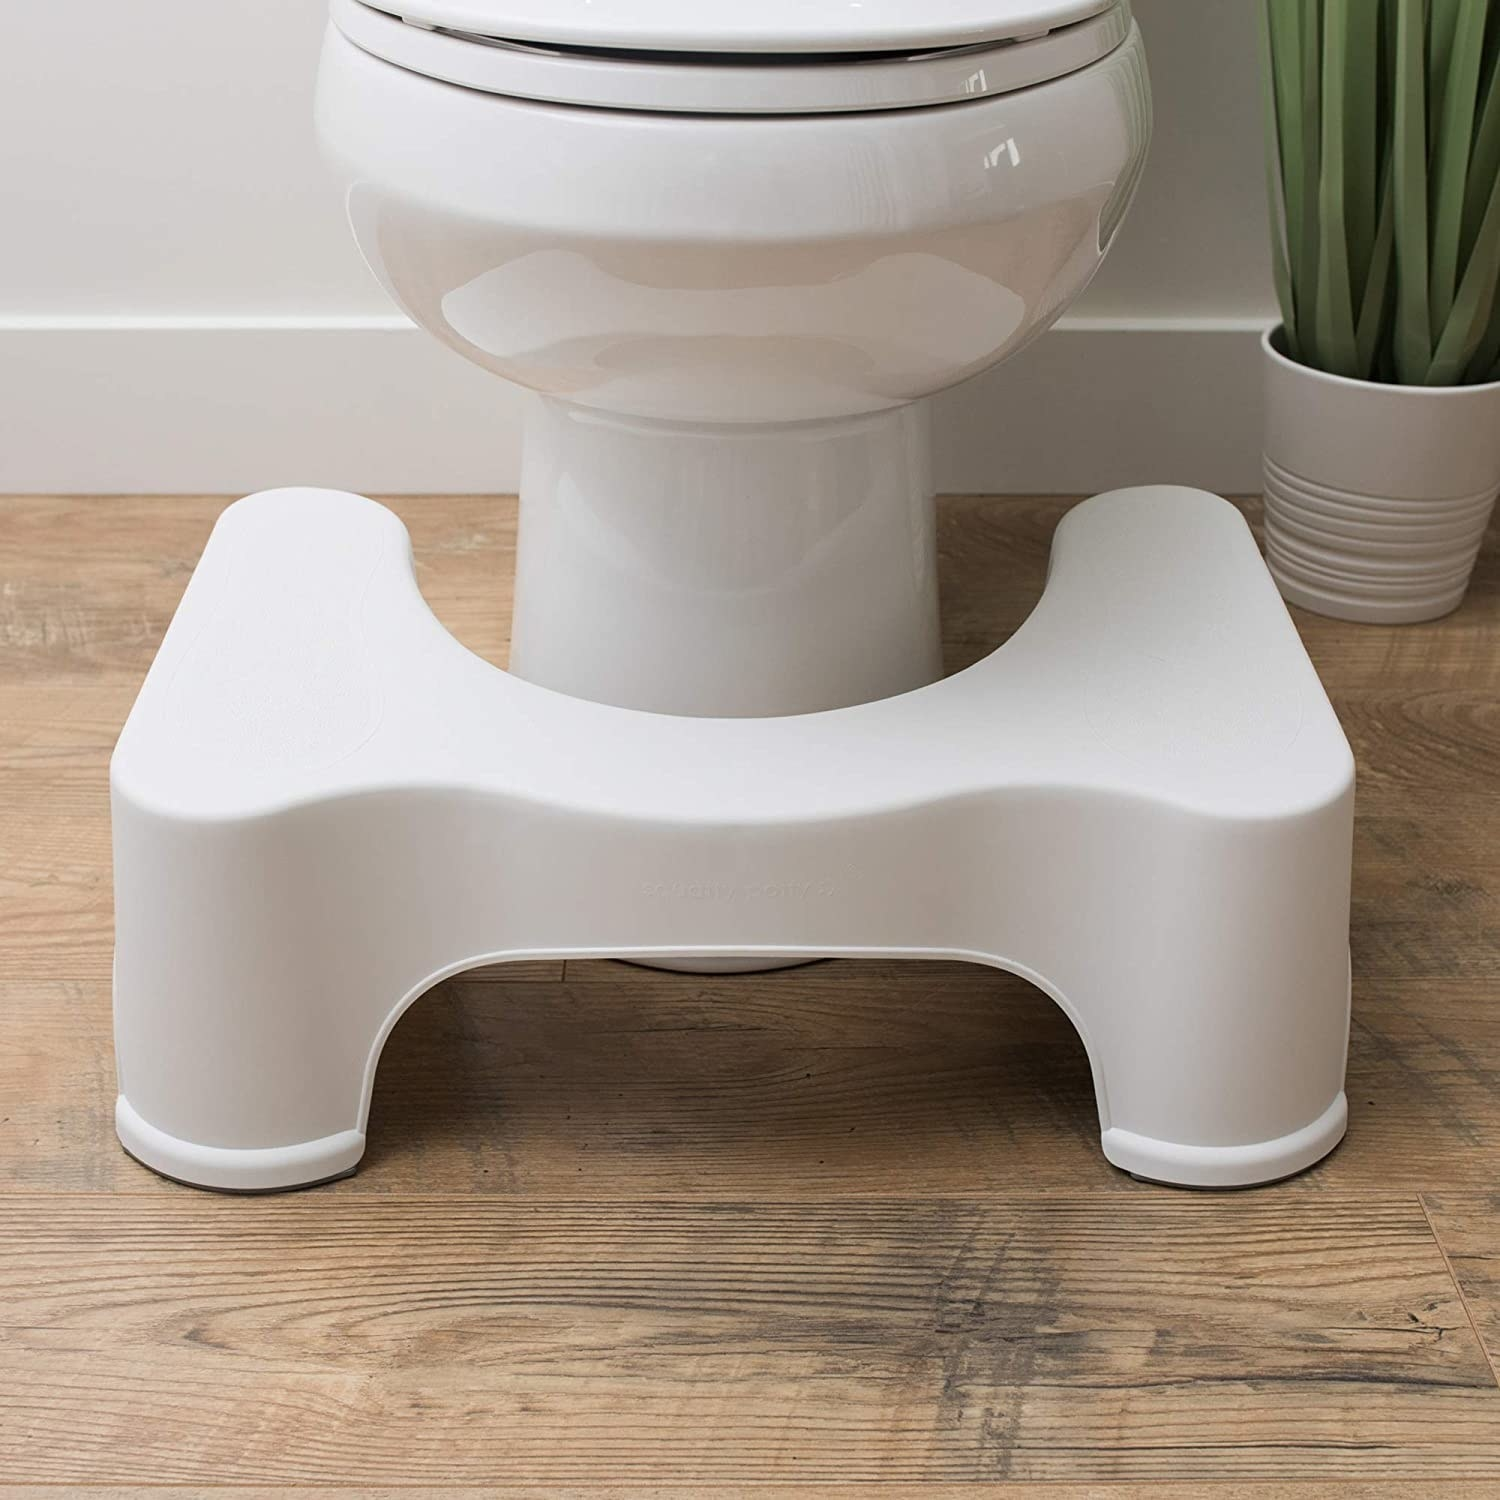 A Squatty Potty stool on the floor in front of a toilet